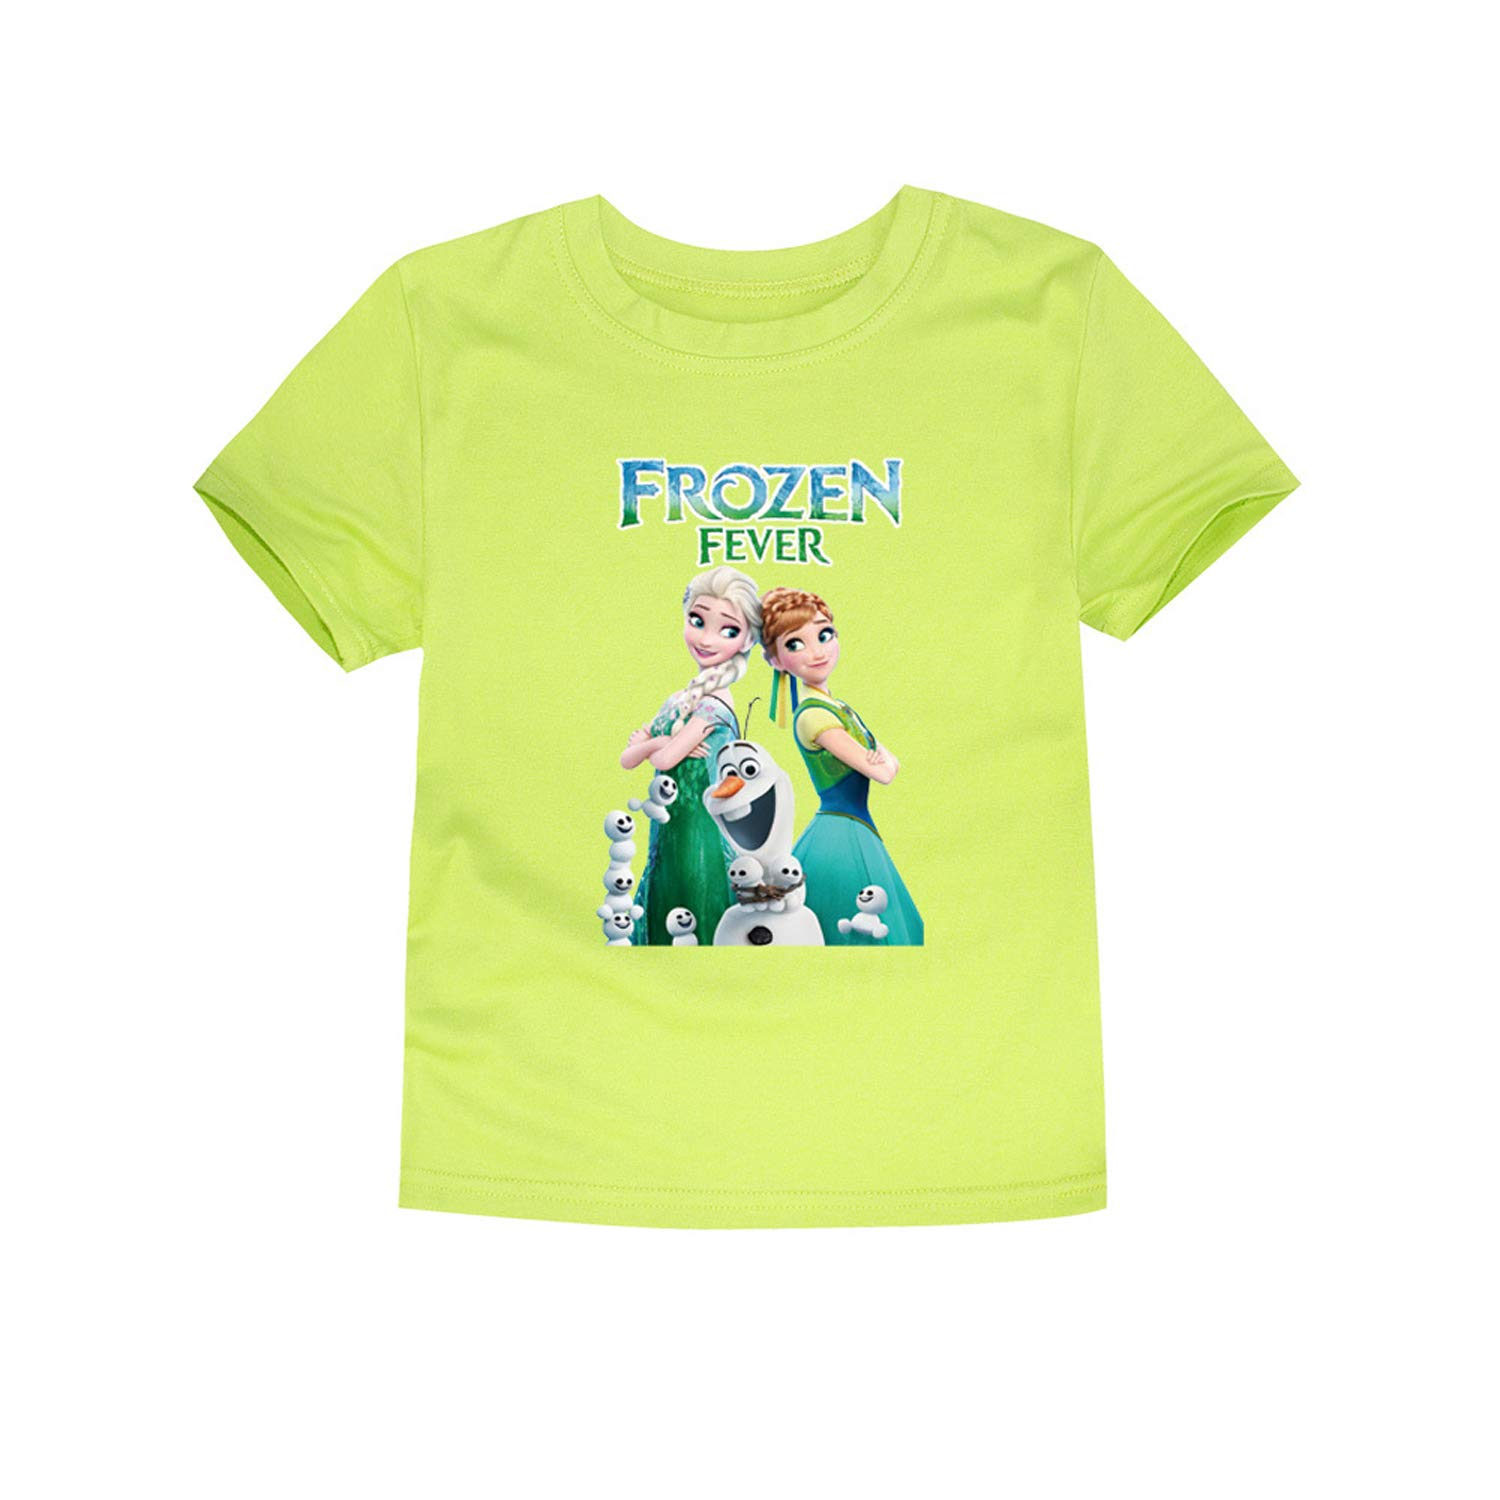 PCLOUD Frozen Childrens Solid Color Short Sleeve T-Shirt